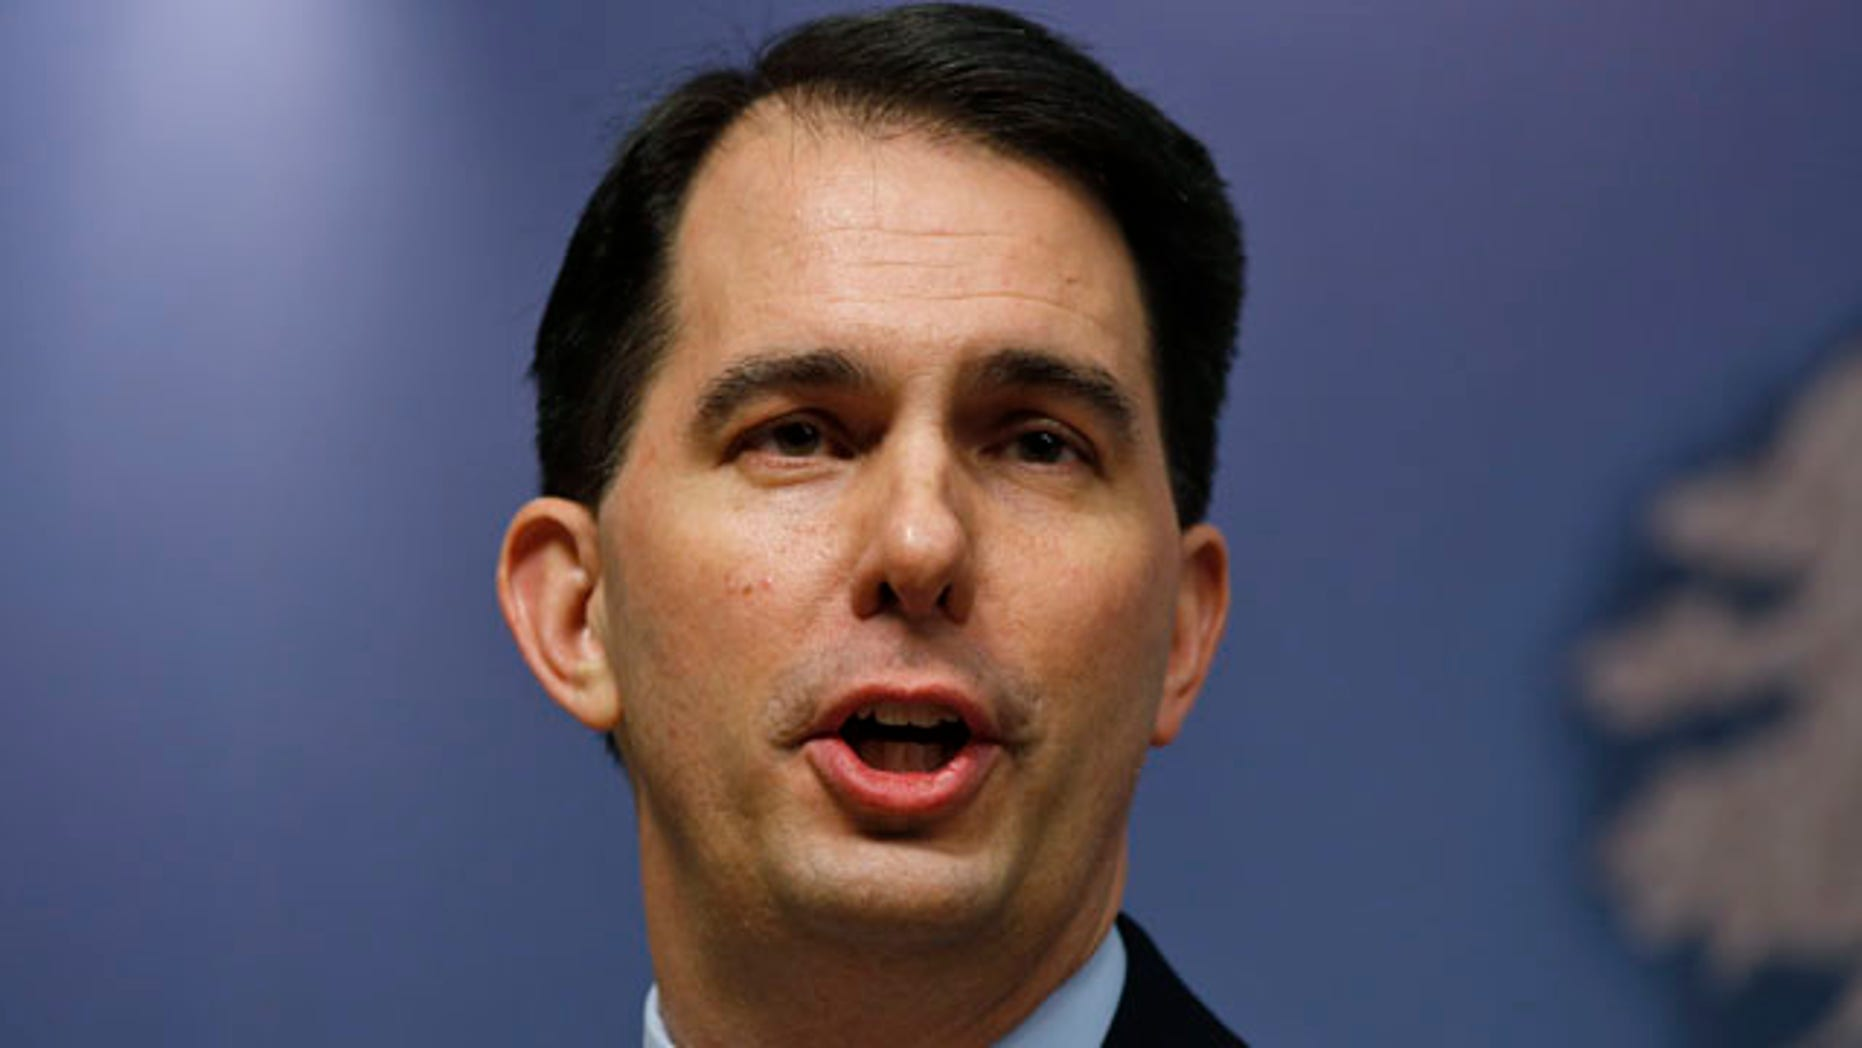 Feb. 11, 2015: Wisconsin Gov. Scott Walker delivers a speech at Chatham House in central London. (AP Photo/Lefteris Pitarakis)